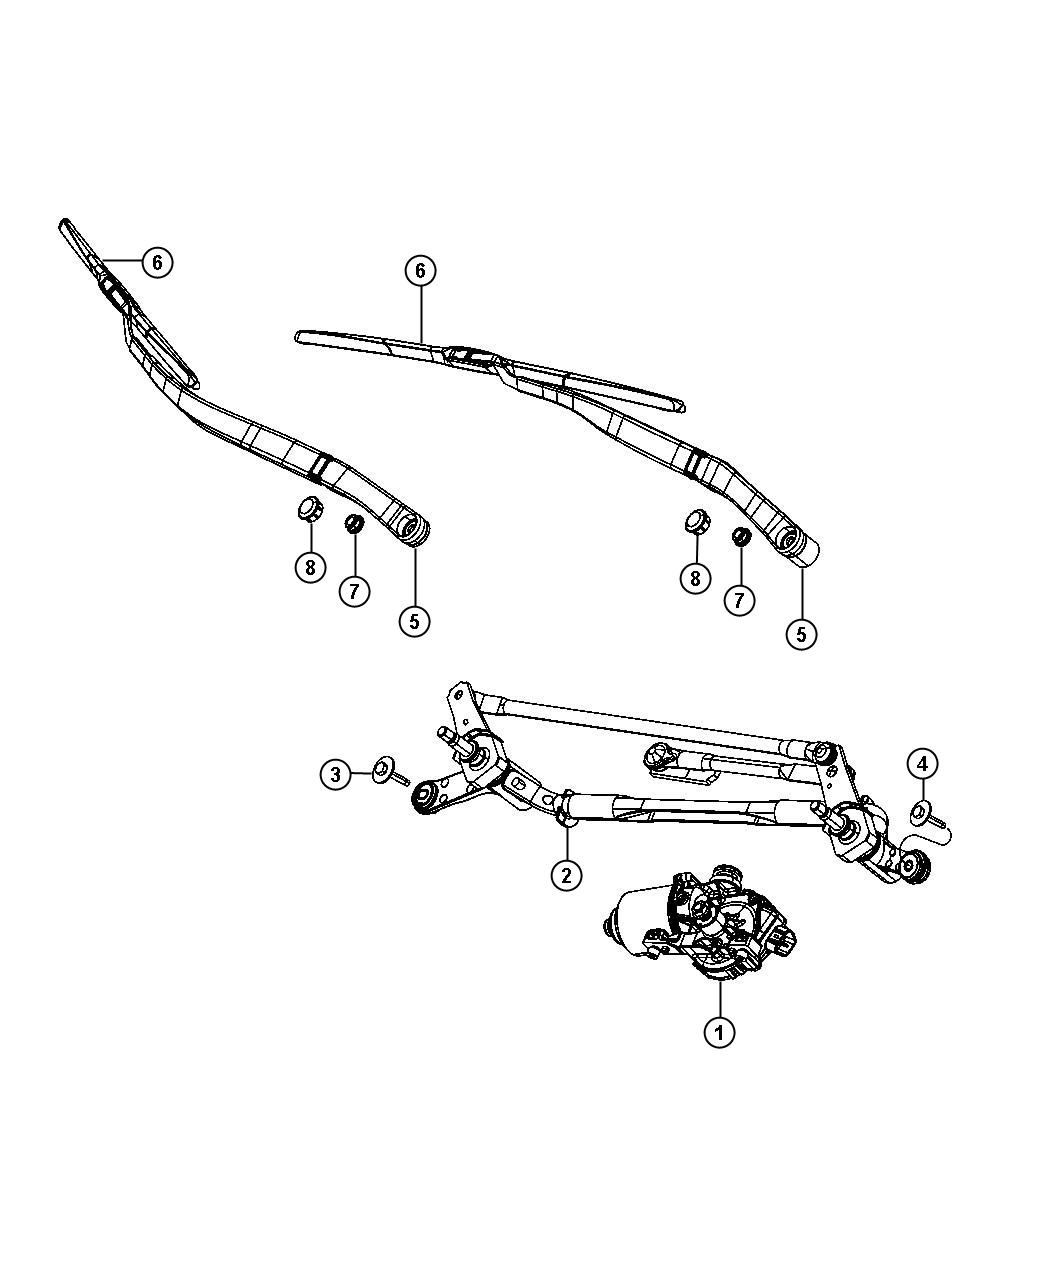 Dodge Dart Motor Windshield Wiper System